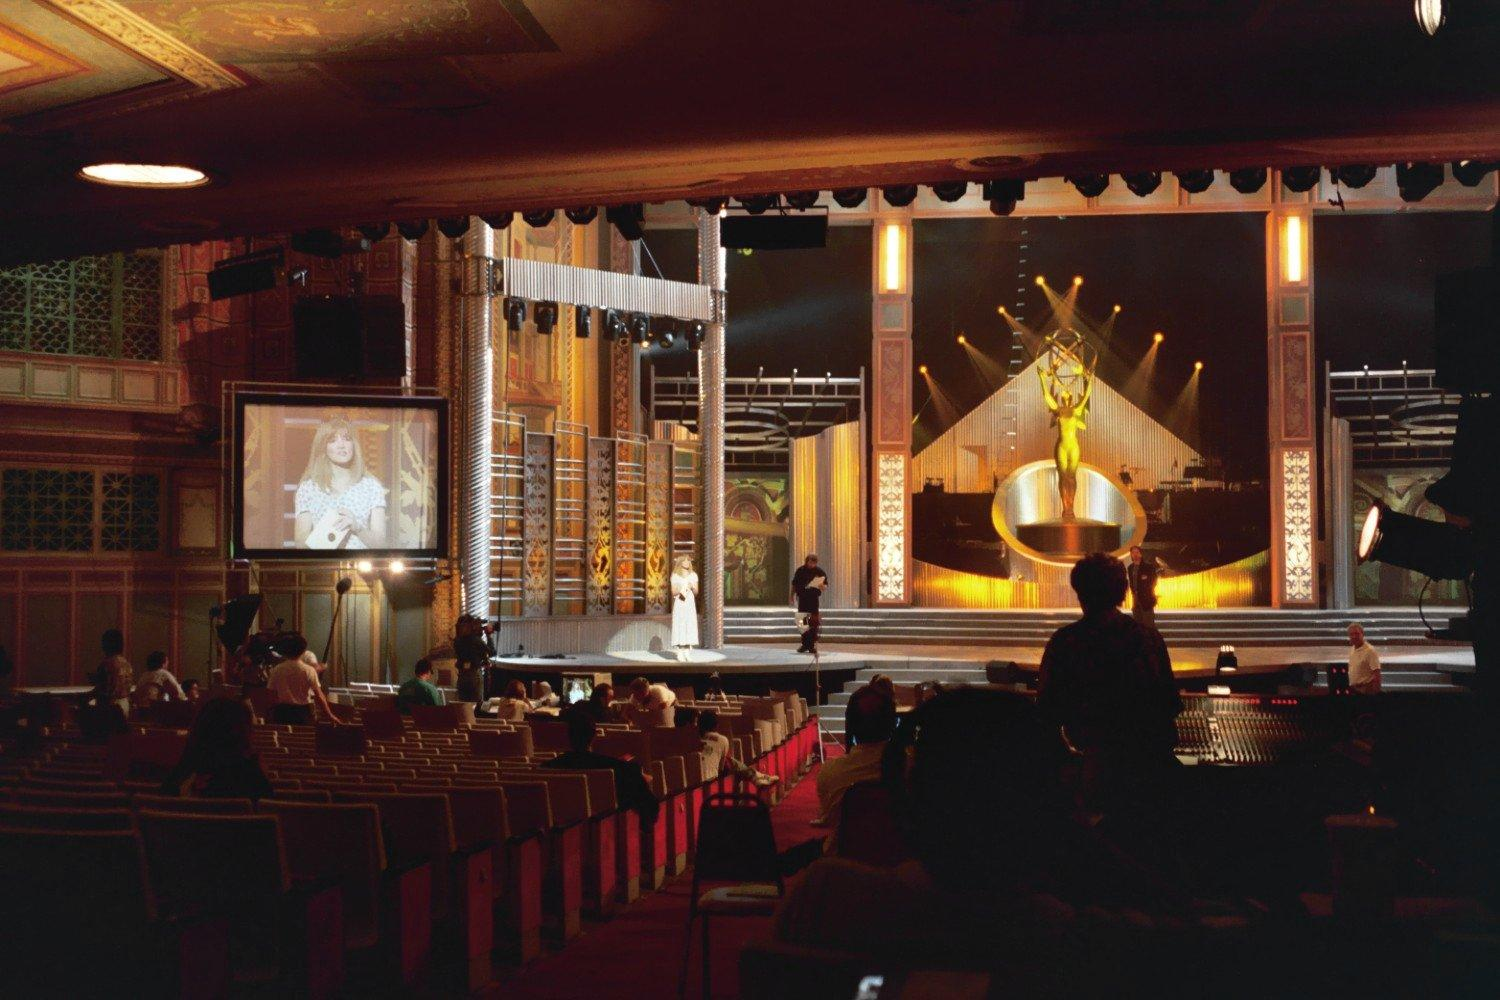 The 69th Annual Emmy Awards Ceremony airs on Sunday, Sept. 17 (CREDIT ALAN LIGHT VIA FLICKR)